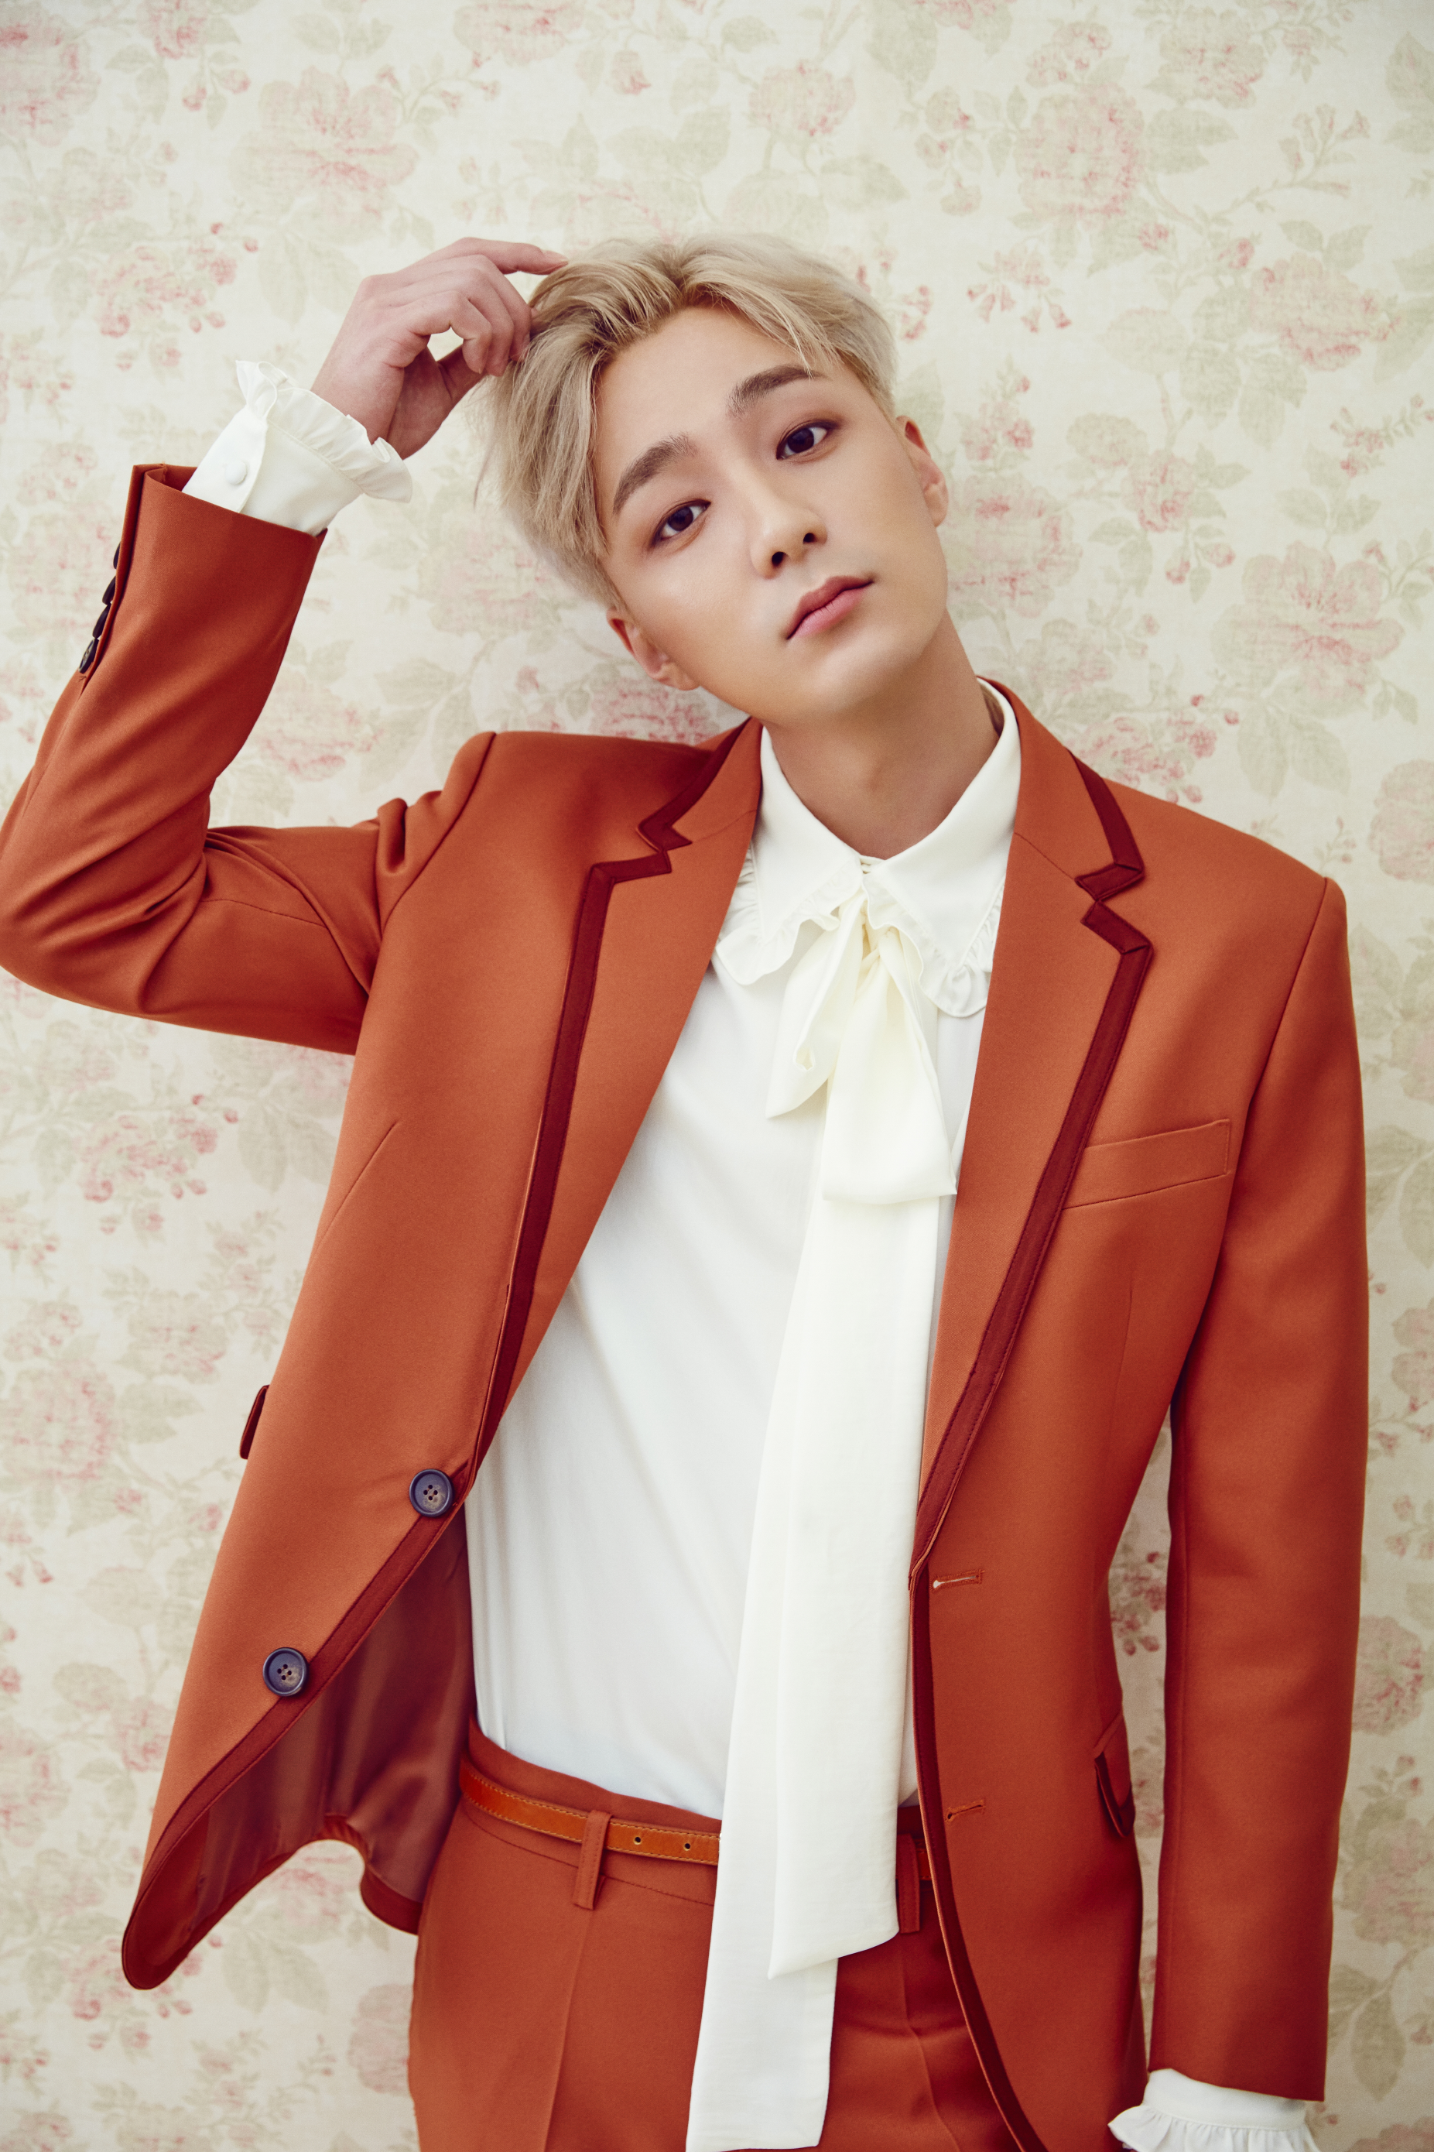 Roy Kim Blossom International Edition Promotional Photo Png